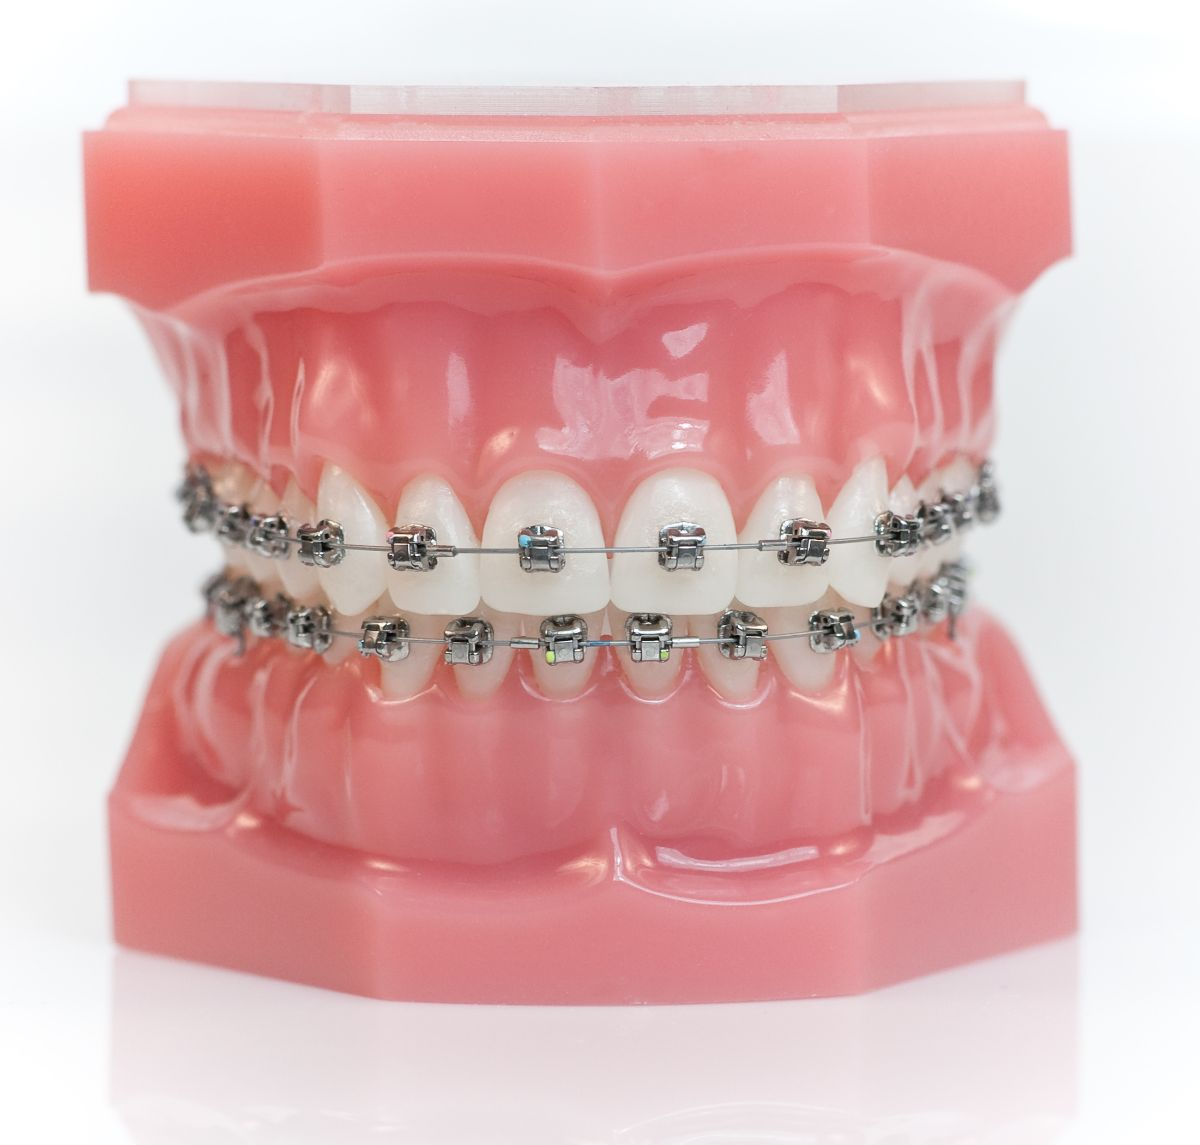 The Benefits of Damon Clear and Metal Braces